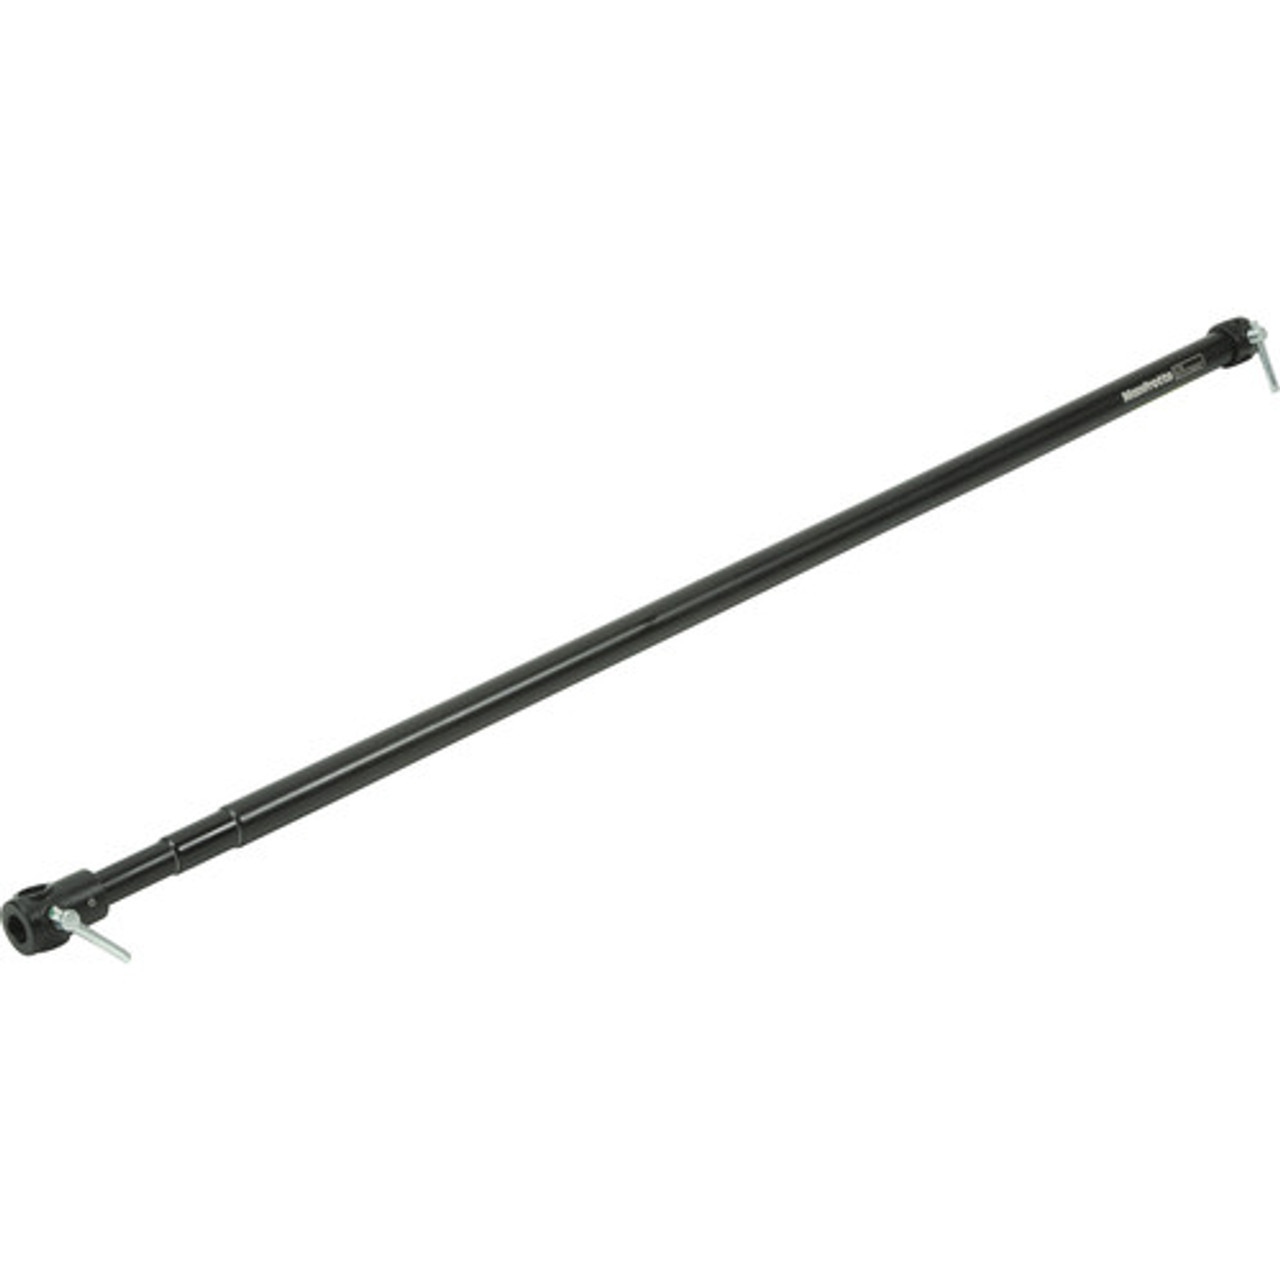 12' Telescopic Crossbar (Cross bar)